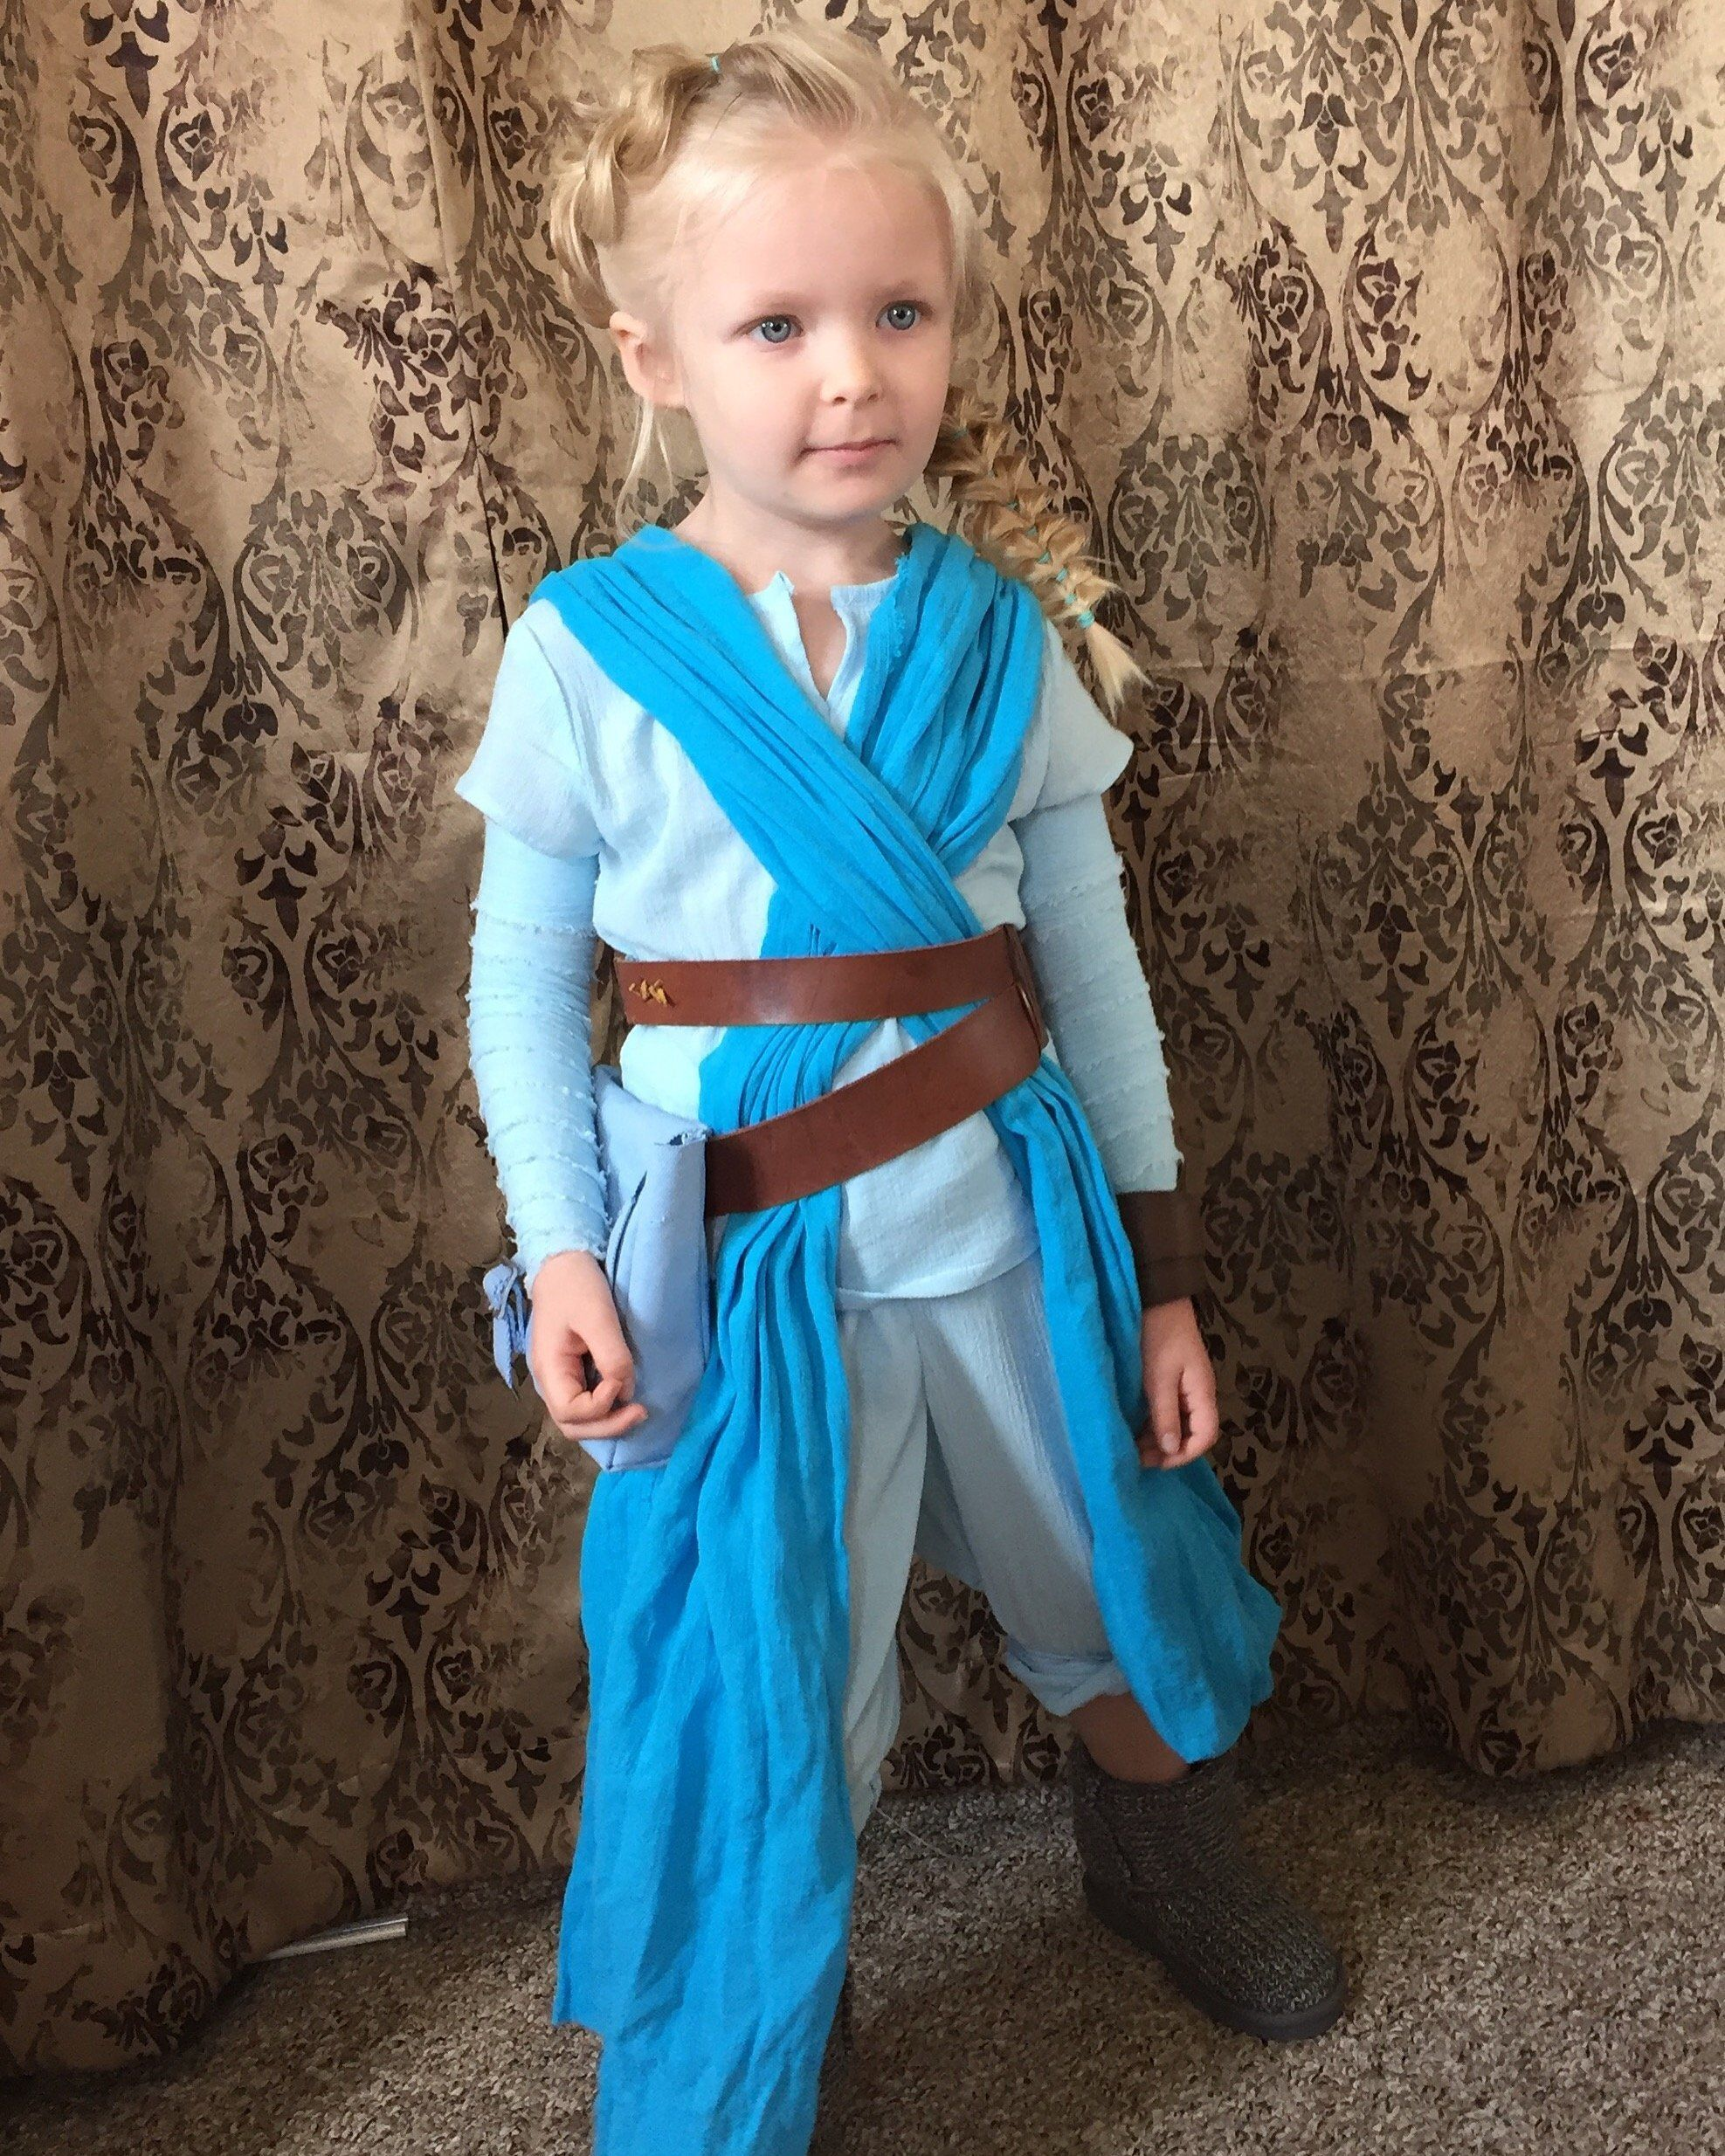 Steven Lamb said he spent about $150 on his daughteru0027s creative costume.  sc 1 st  HuffPost & Girlu0027s Creative Costume Incorporates Her Love For u0027Frozenu0027 And u0027Star ...